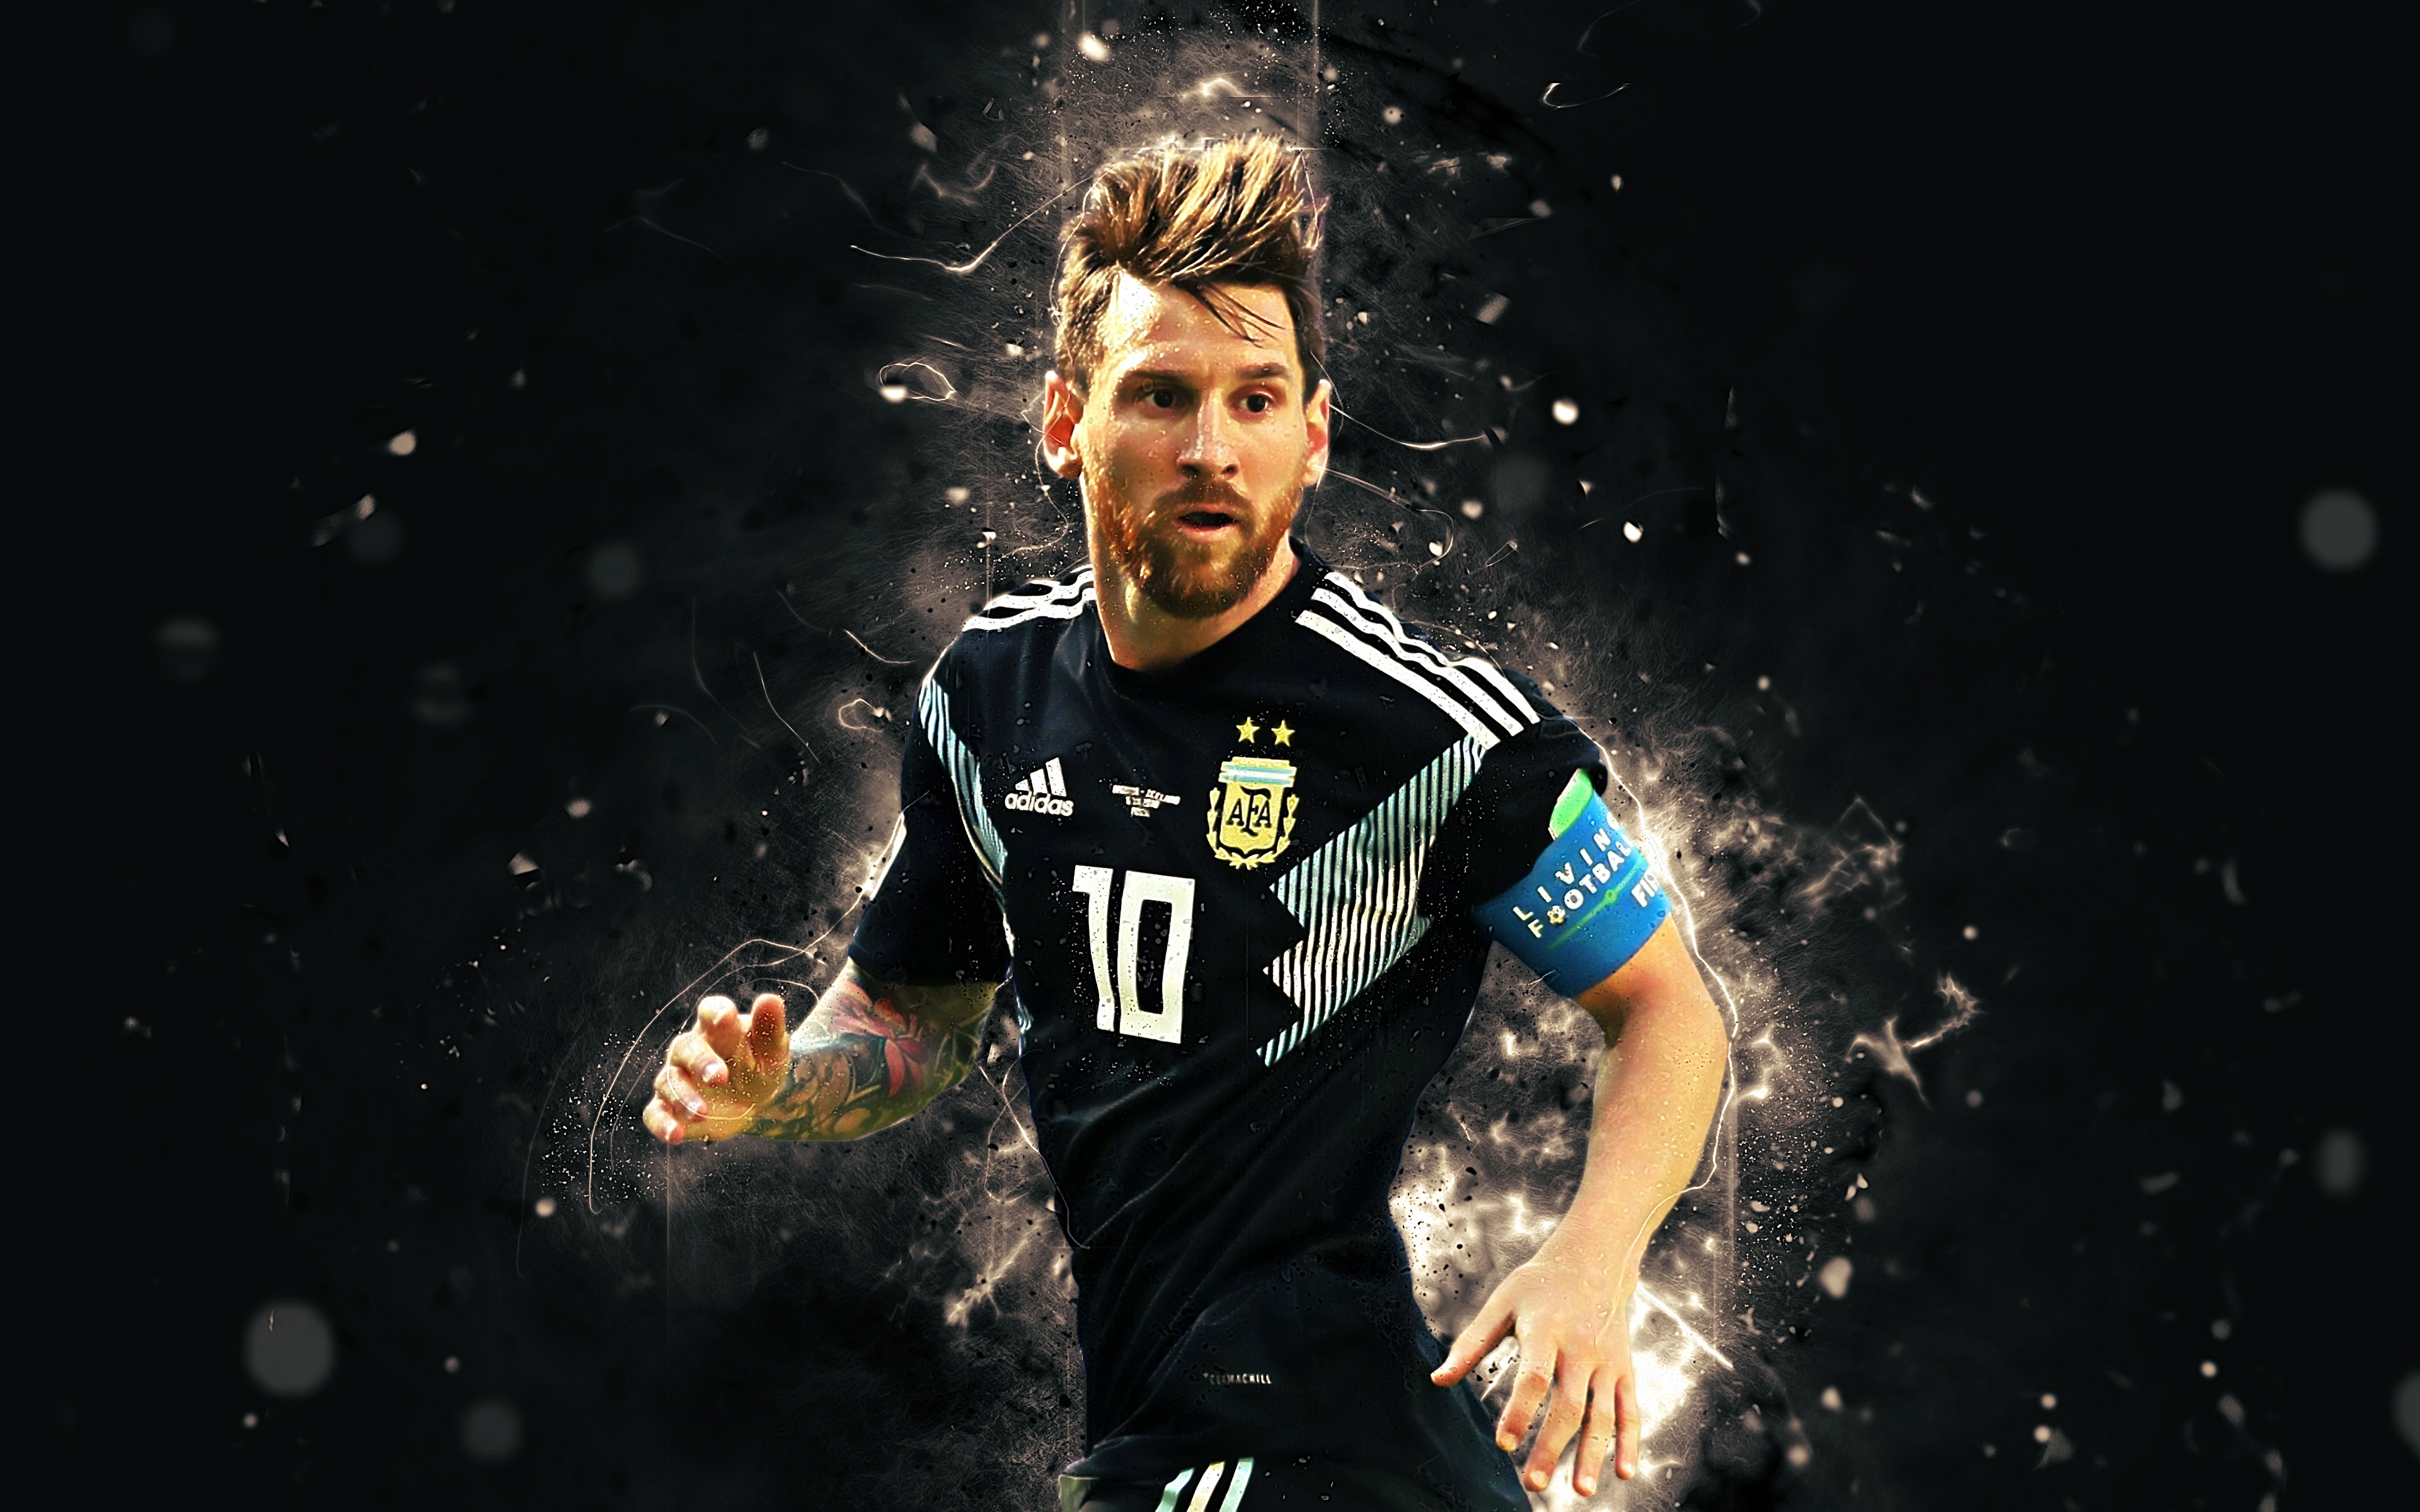 Messi Hd Wallpapers 4k Argentina